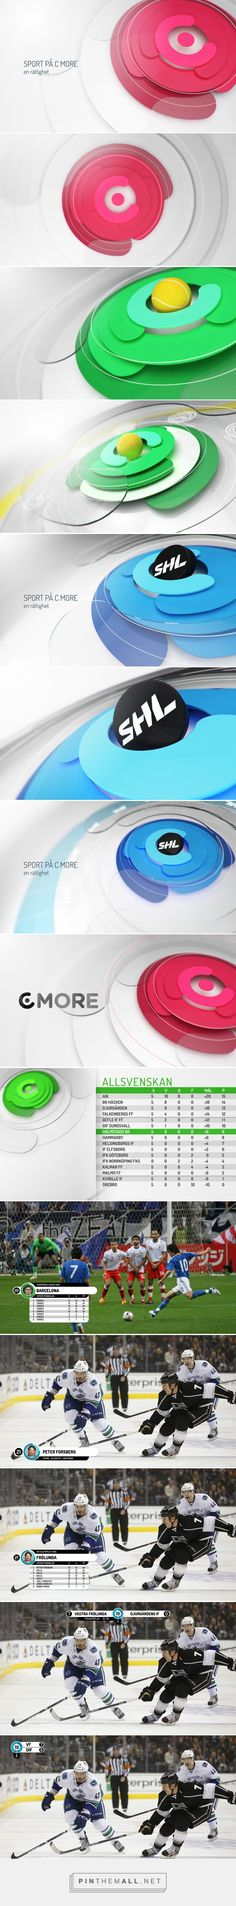 C MORE ID PITCH on Behance... - a grouped images picture - Pin Them All